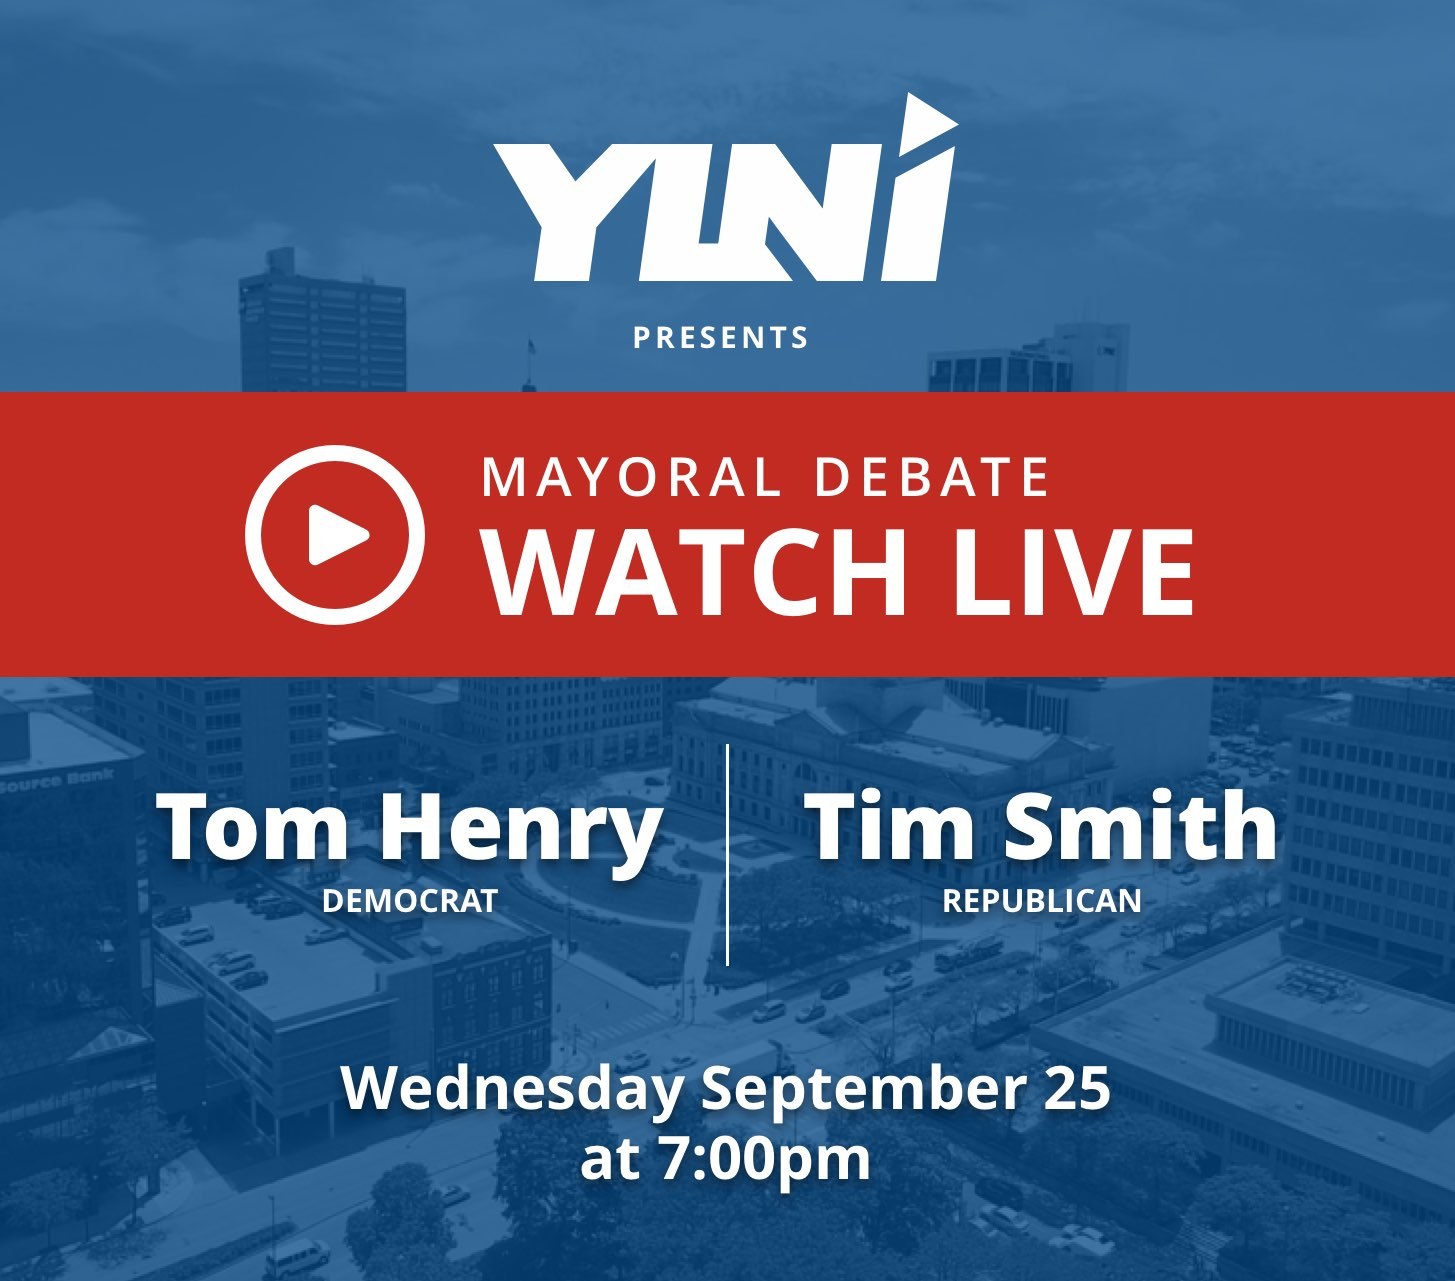 YLNI Mayoral Debate - Watch Live